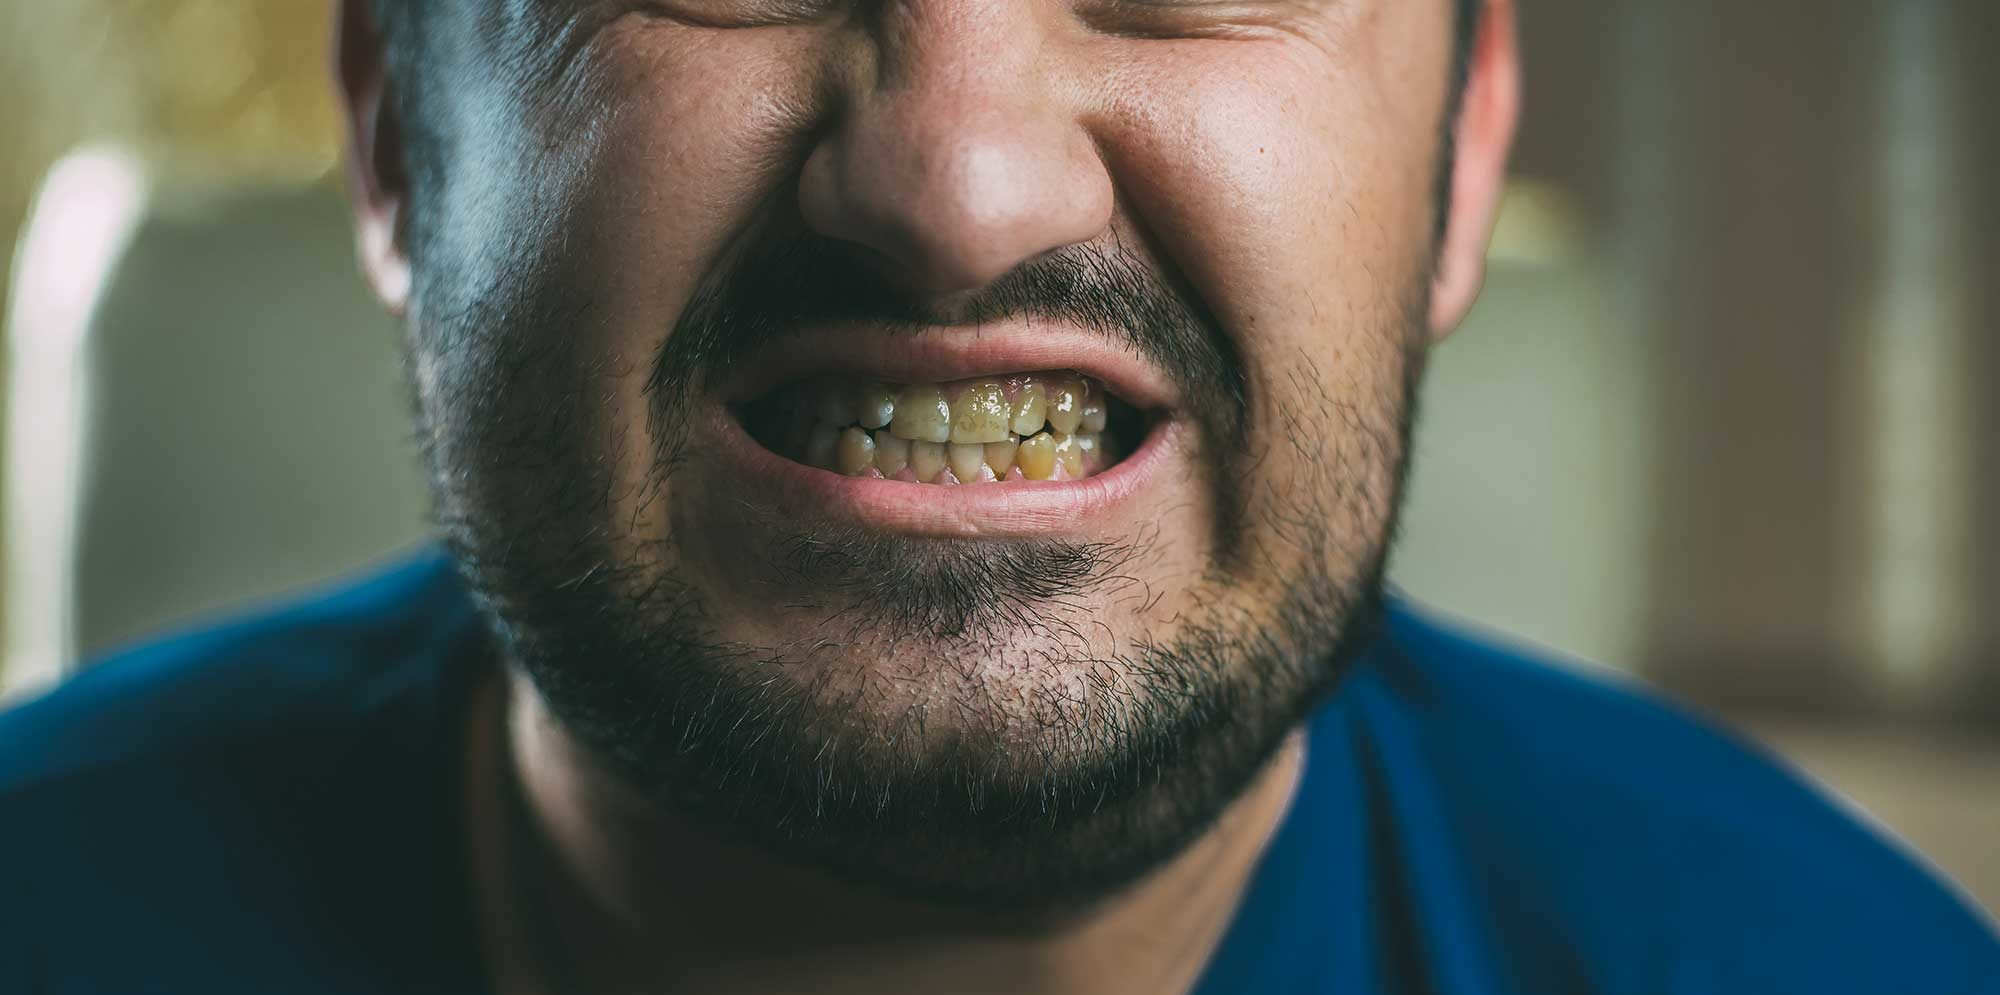 Ben Atkins highlights the oral health gap